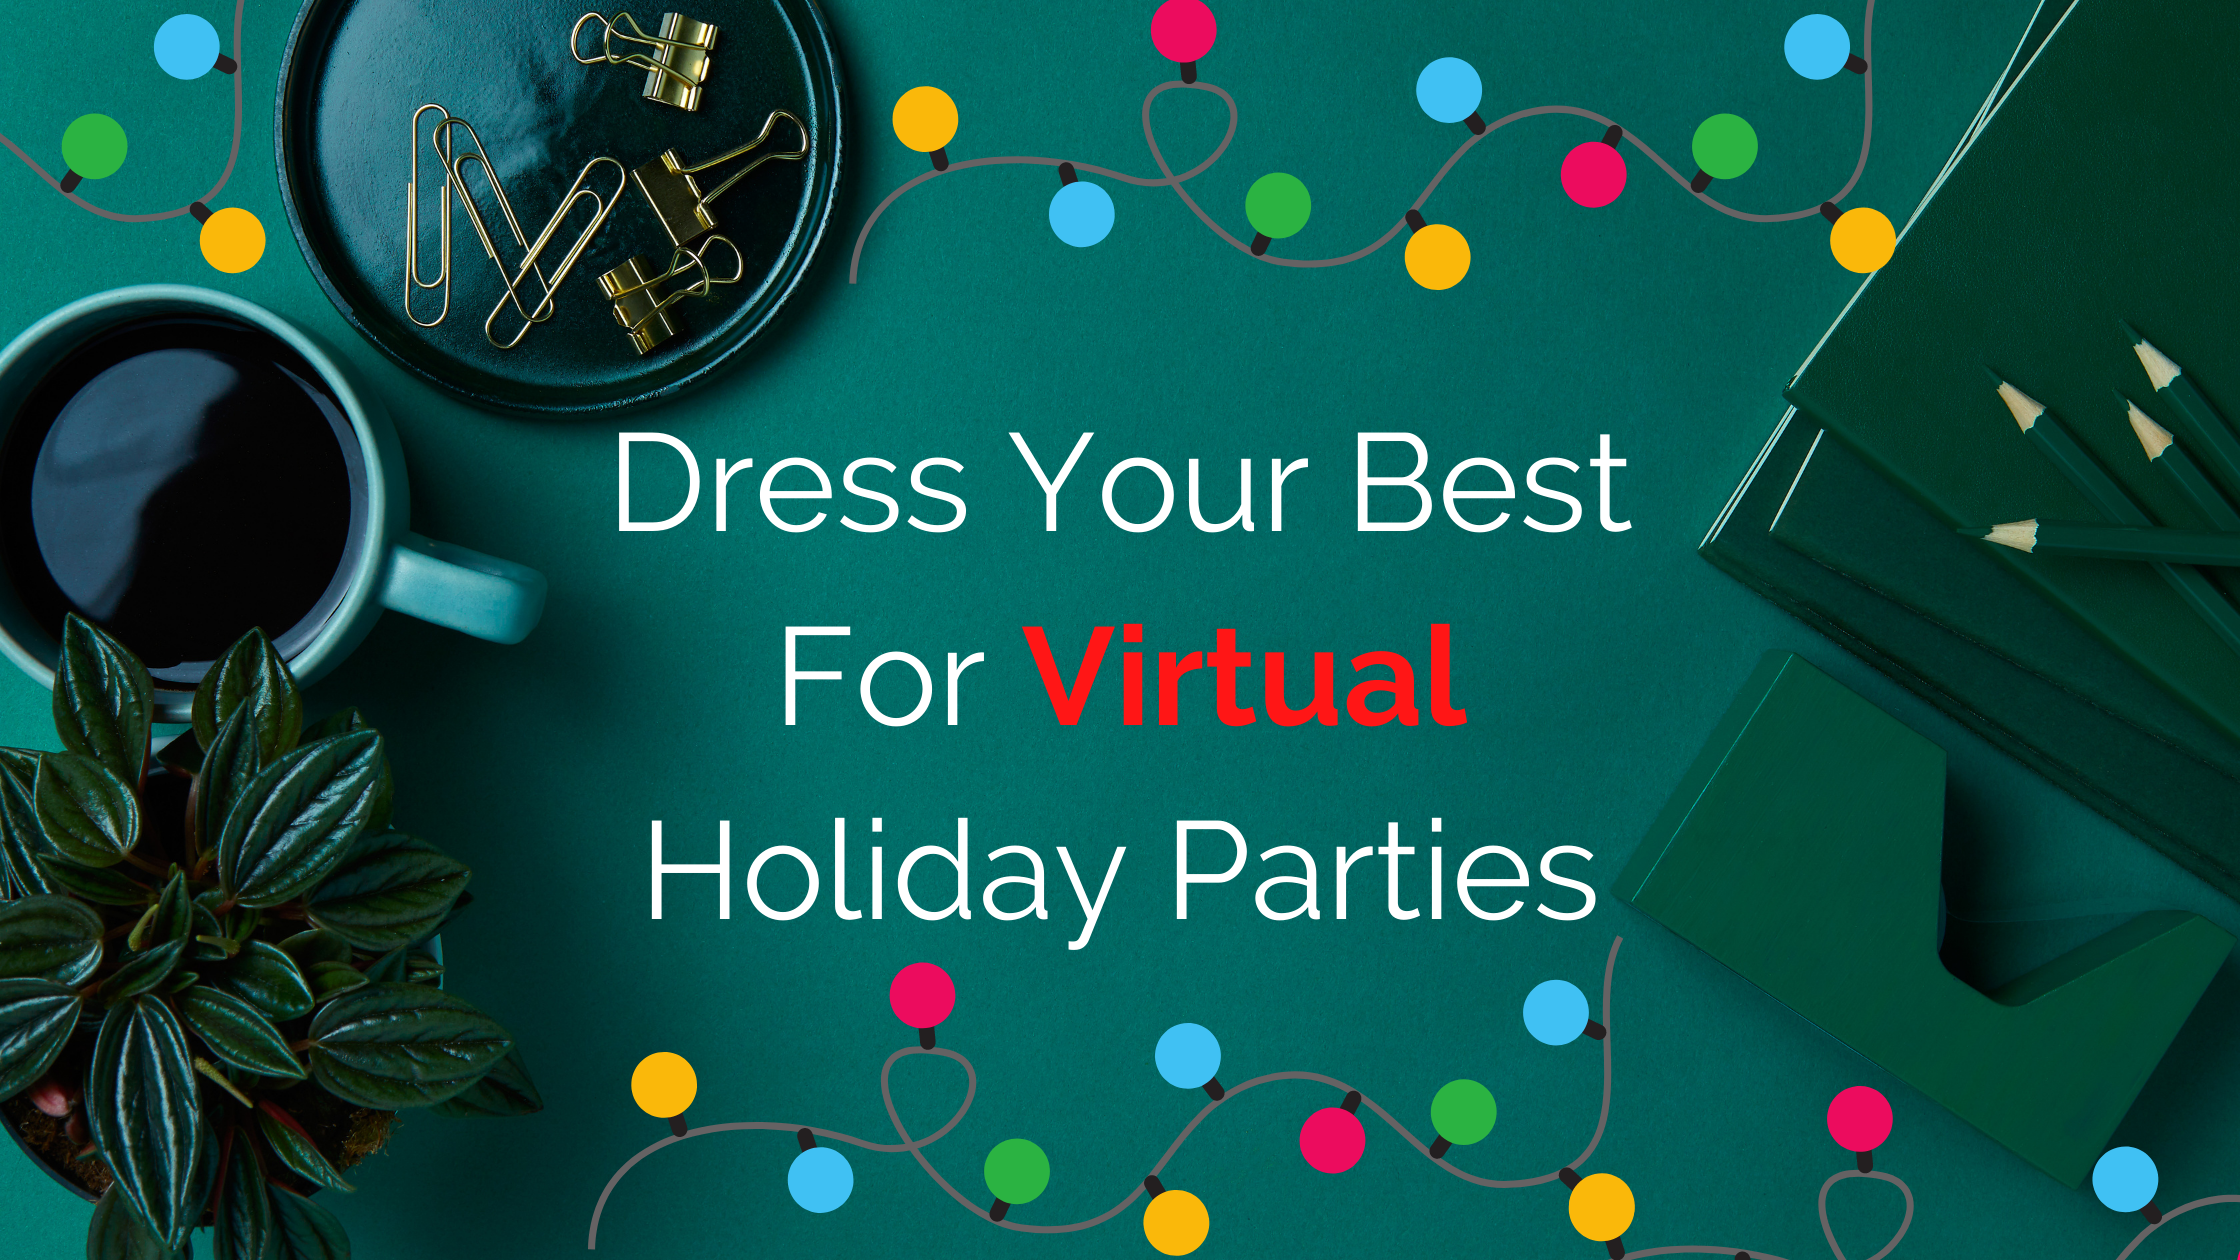 Dress Your best For Virtual Holiday Parties Festive Holiday Banner Image